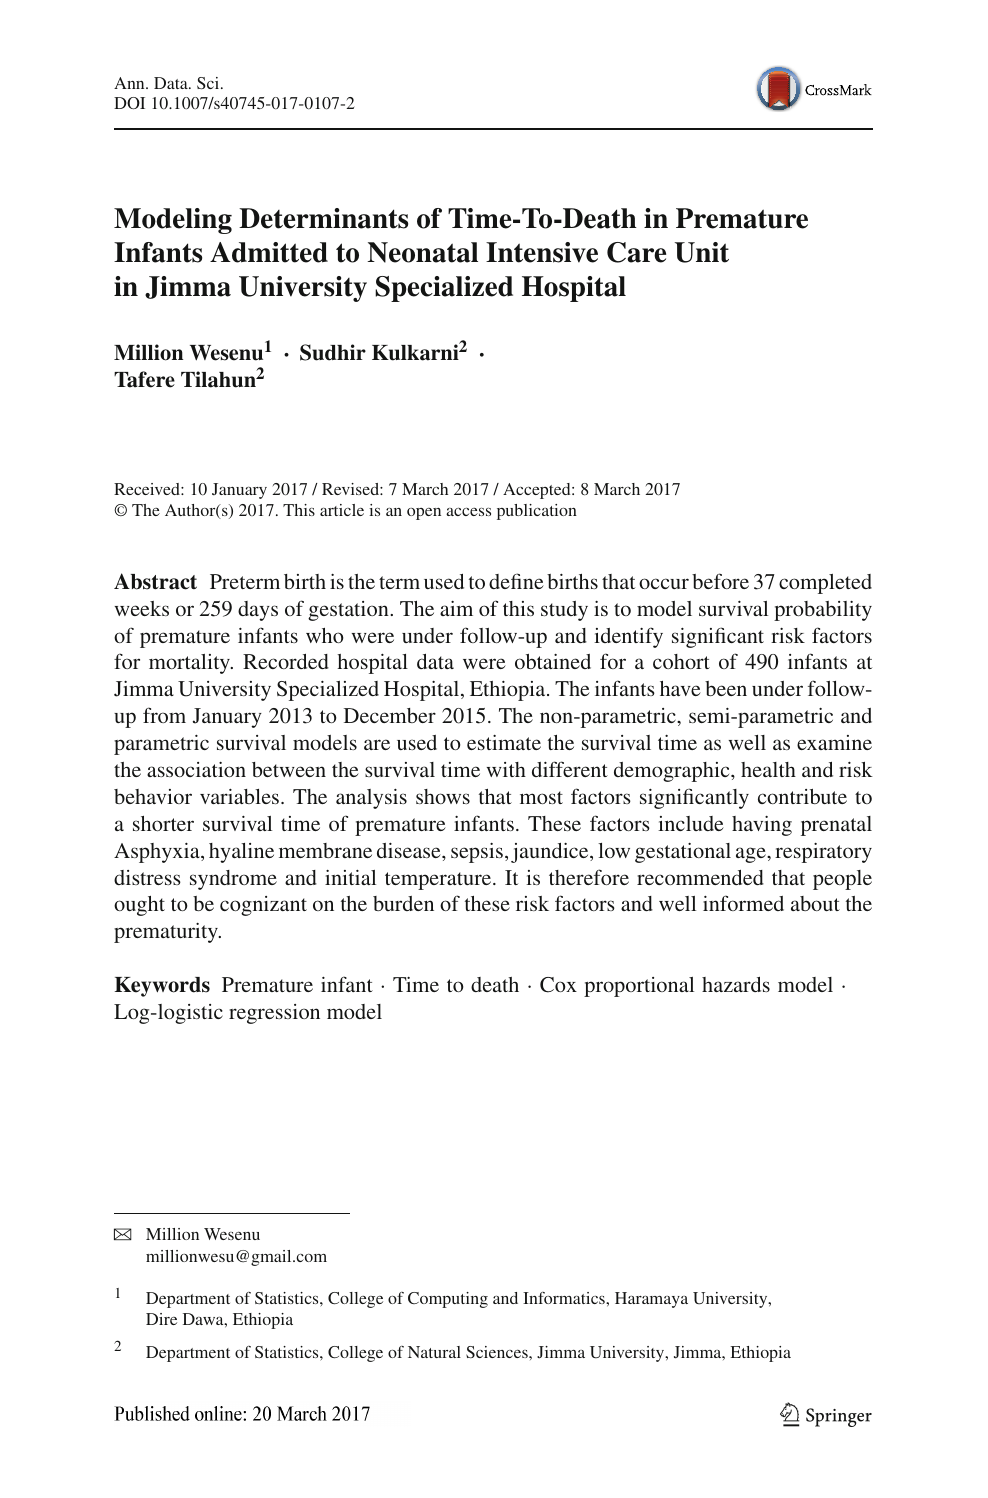 Modeling Determinants of Time-To-Death in Premature Infants Admitted